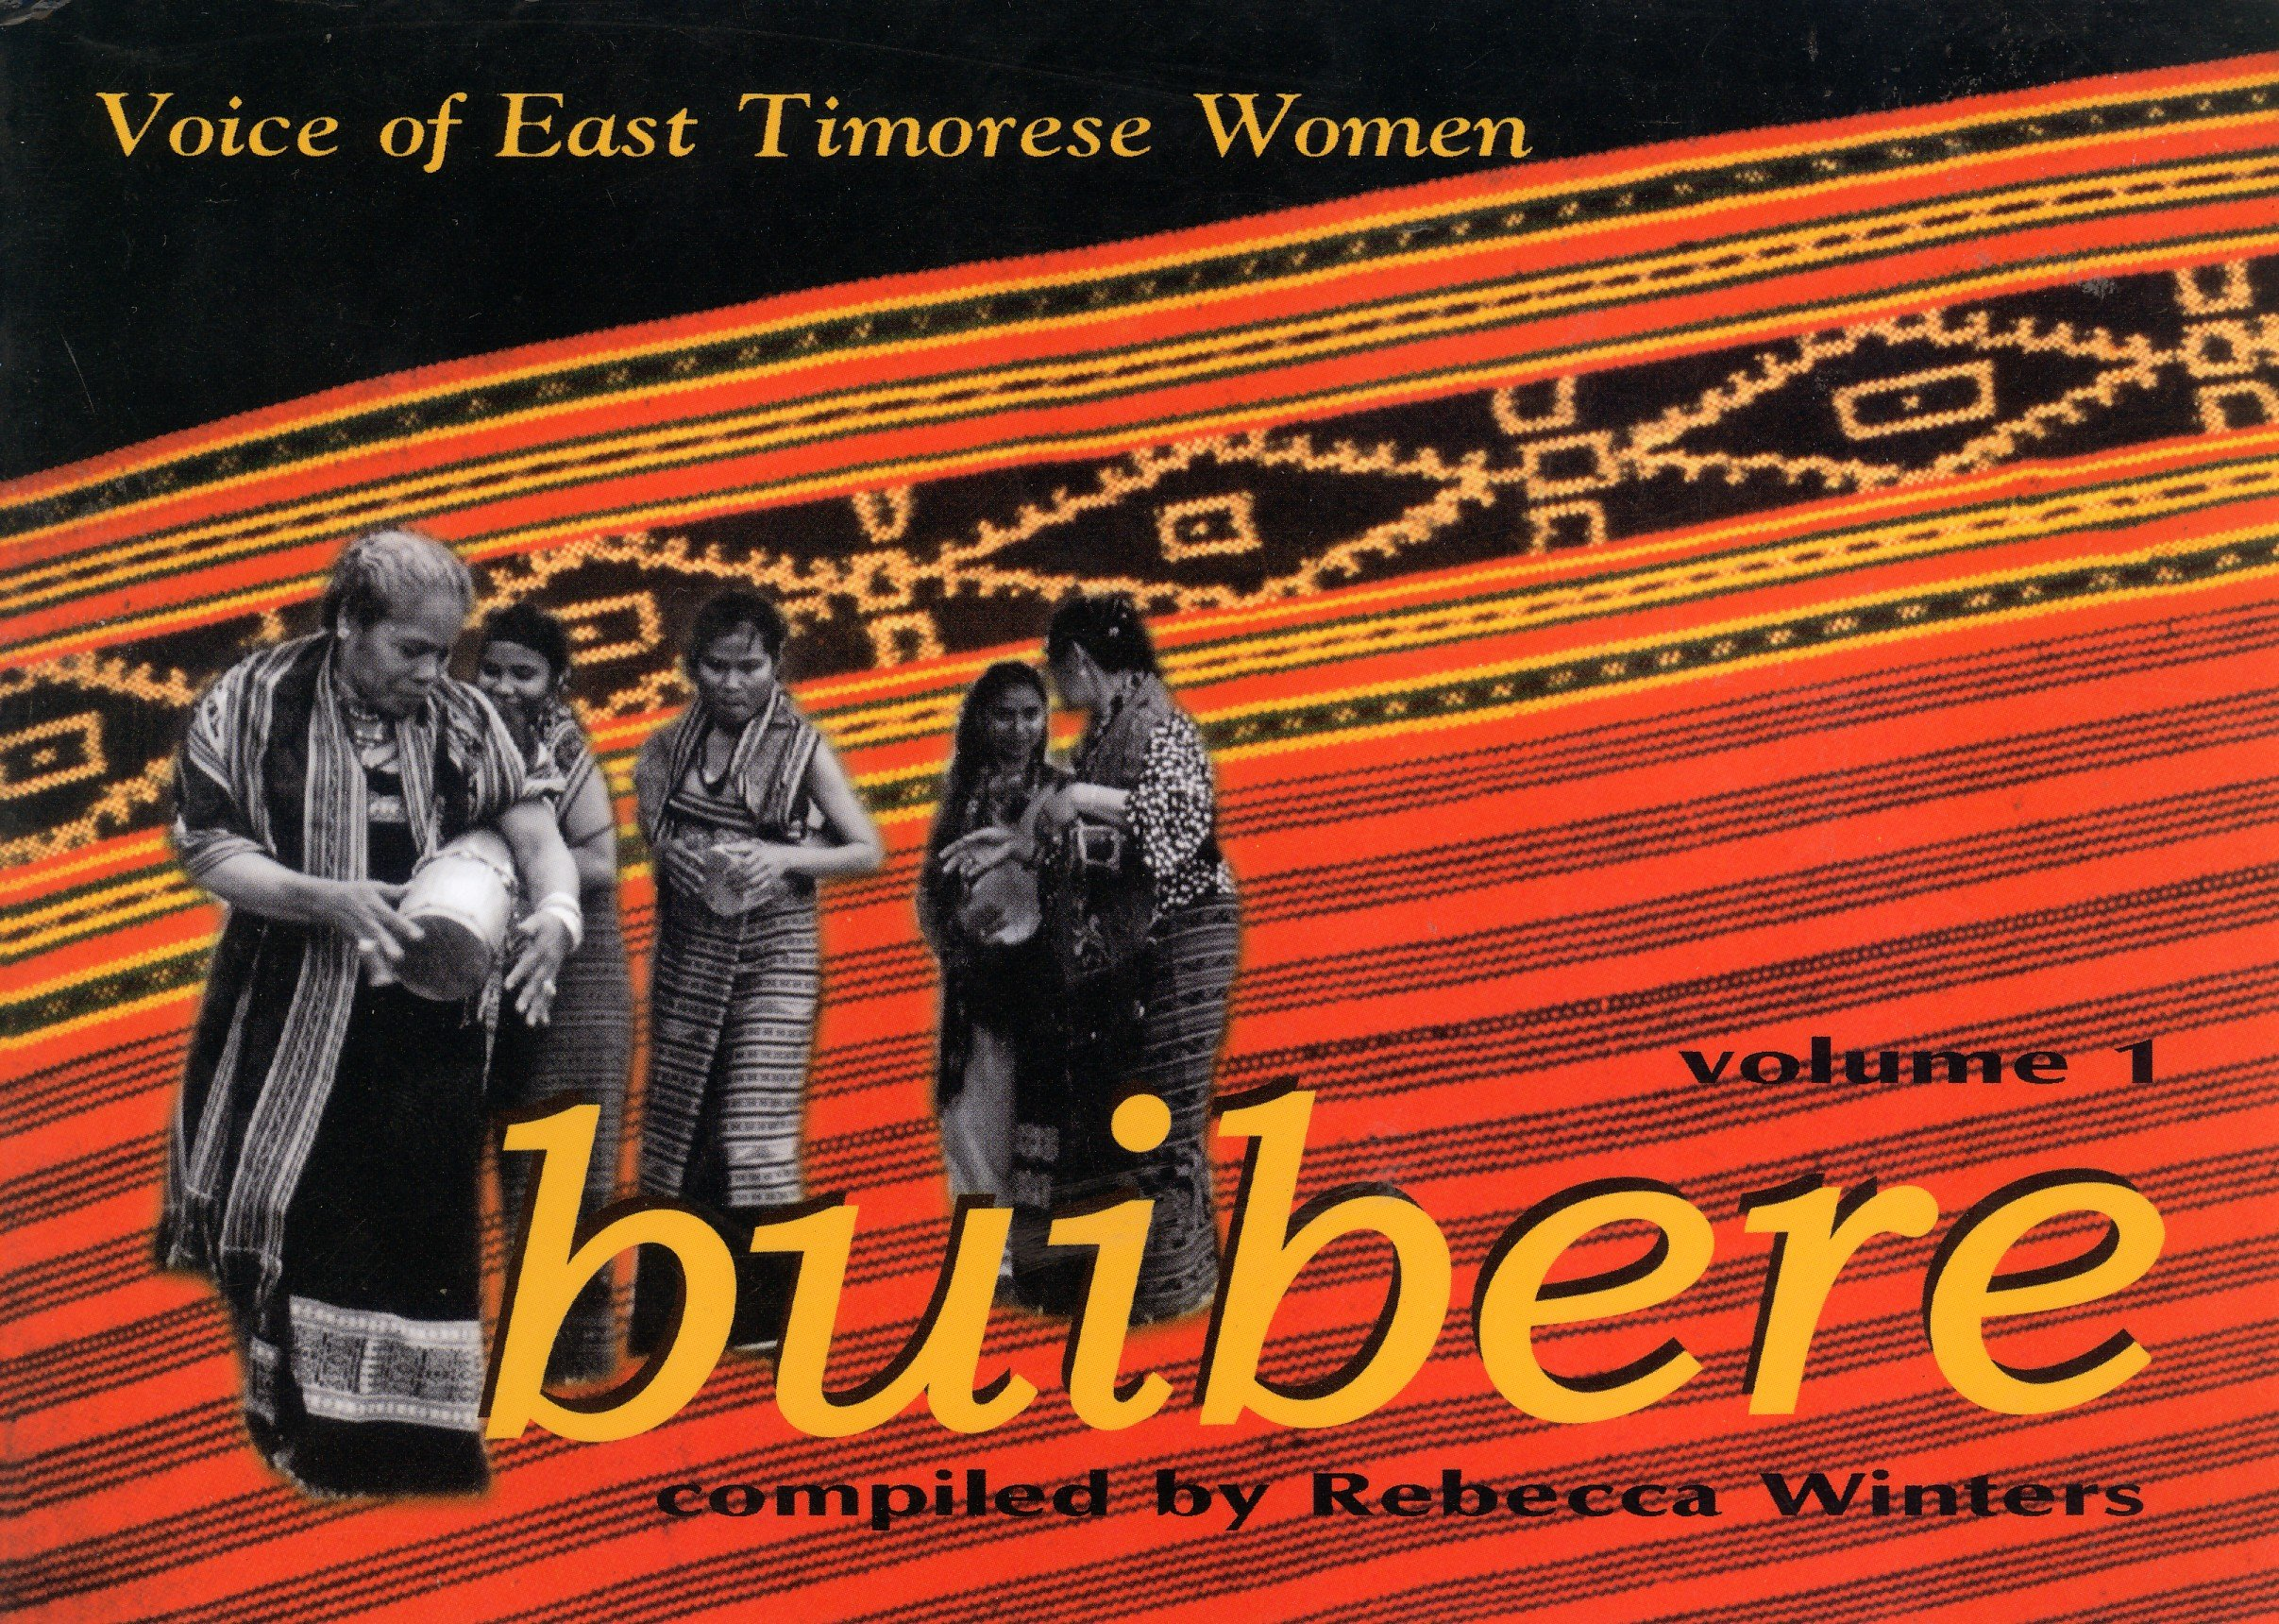 Cover image: Buibere: voice of East Timorese women [vol. 1]